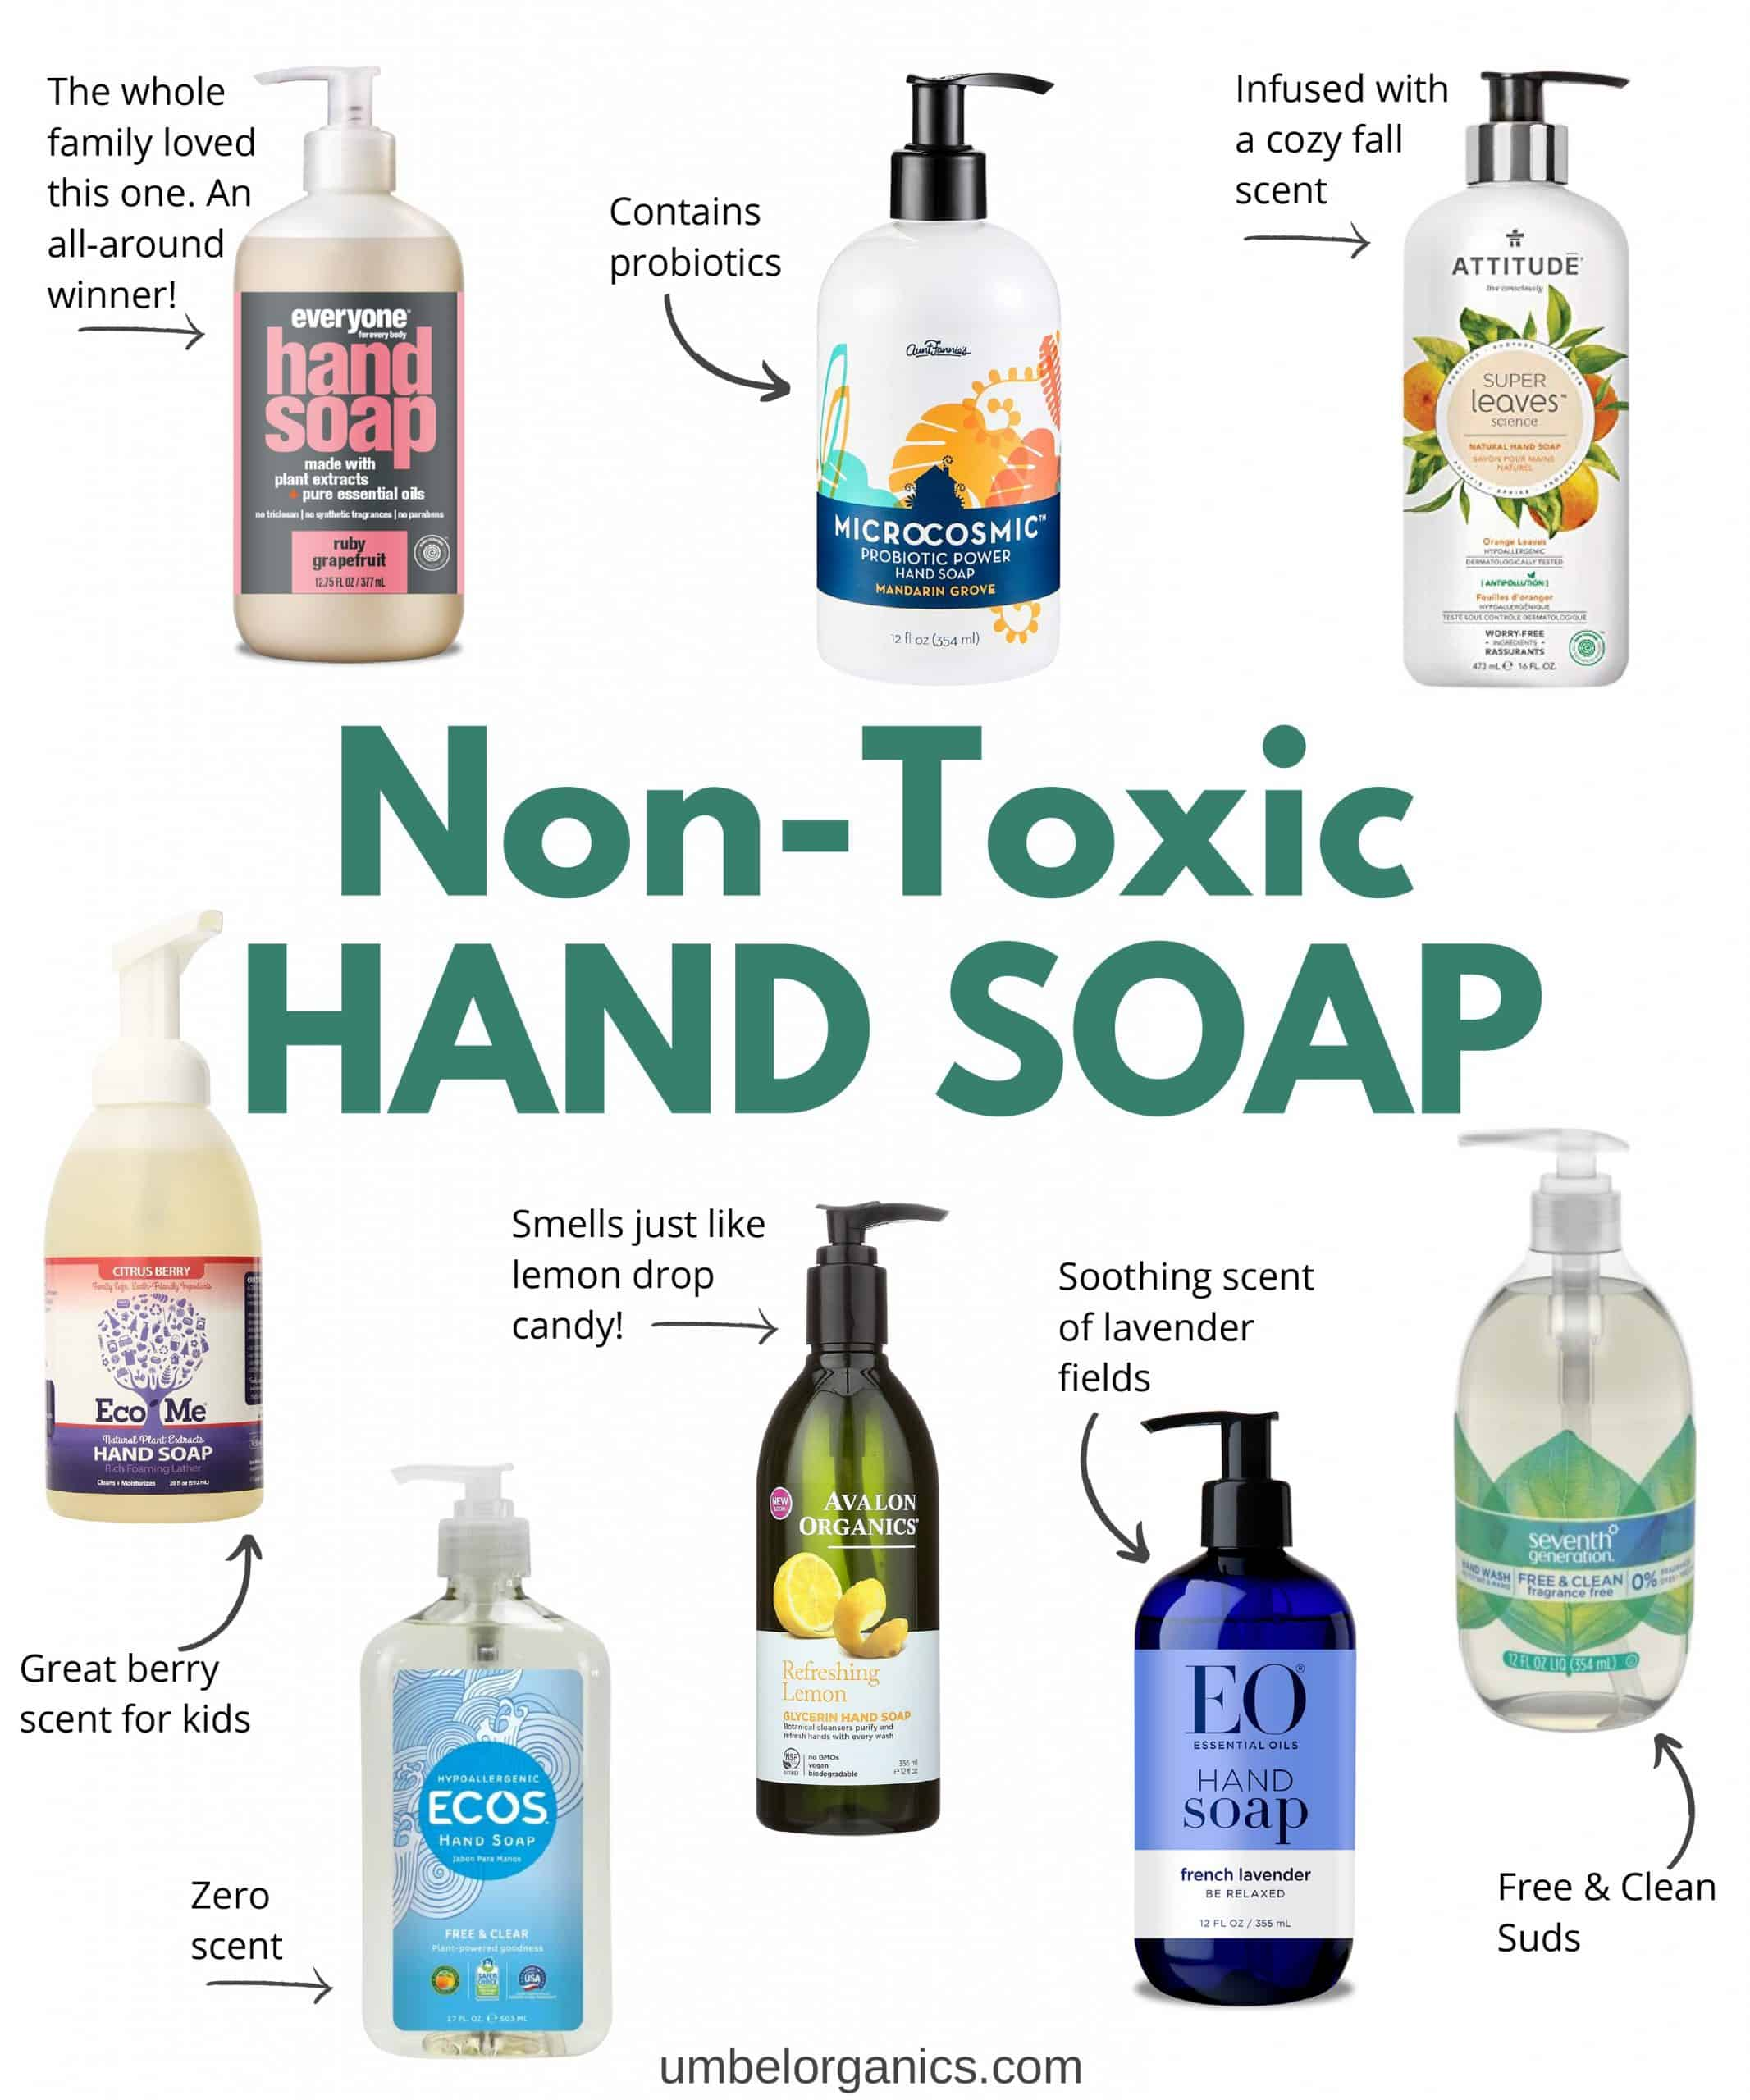 8 Non-Toxic Hand Soap Brands